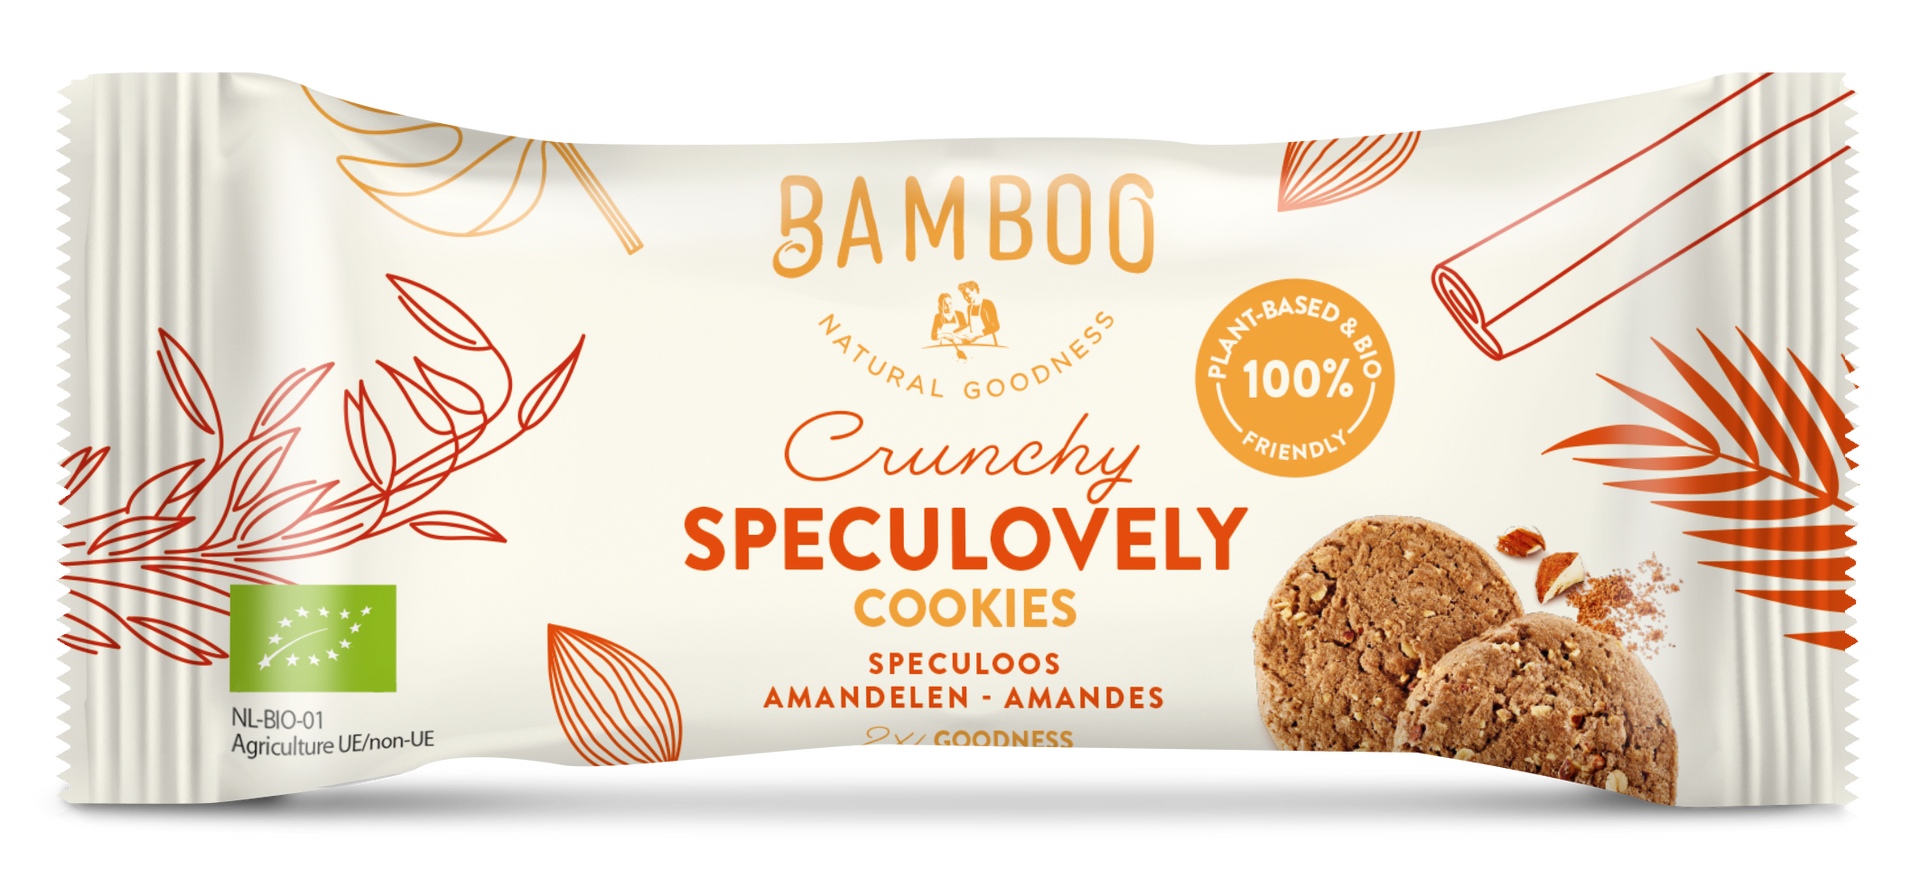 Bamboo Portion pack Speculovely simu.png